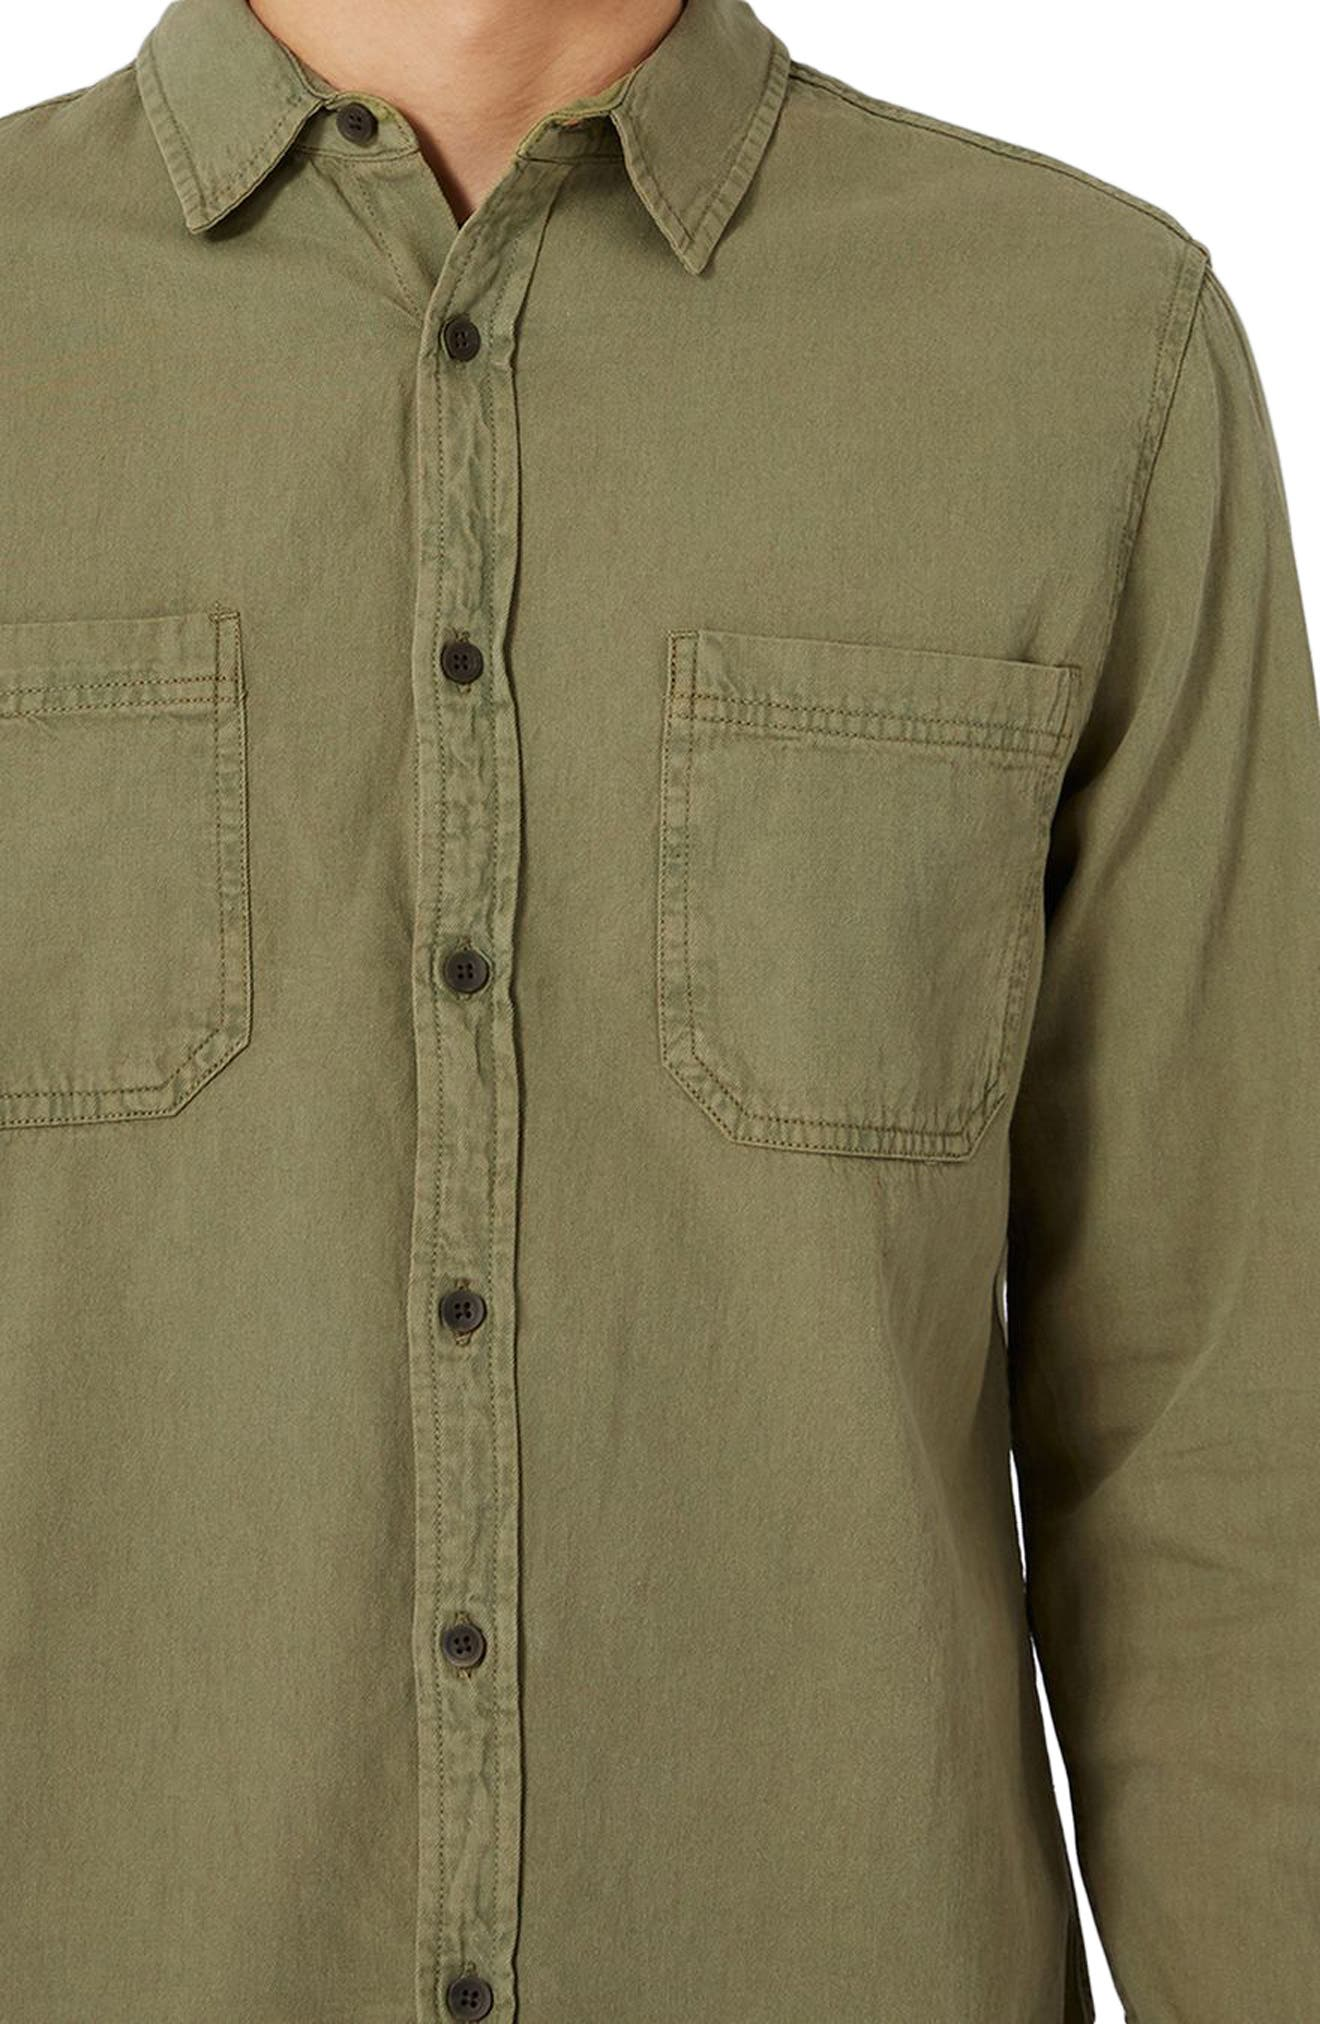 Trim Fit Washed Twill Shirt,                             Alternate thumbnail 3, color,                             300